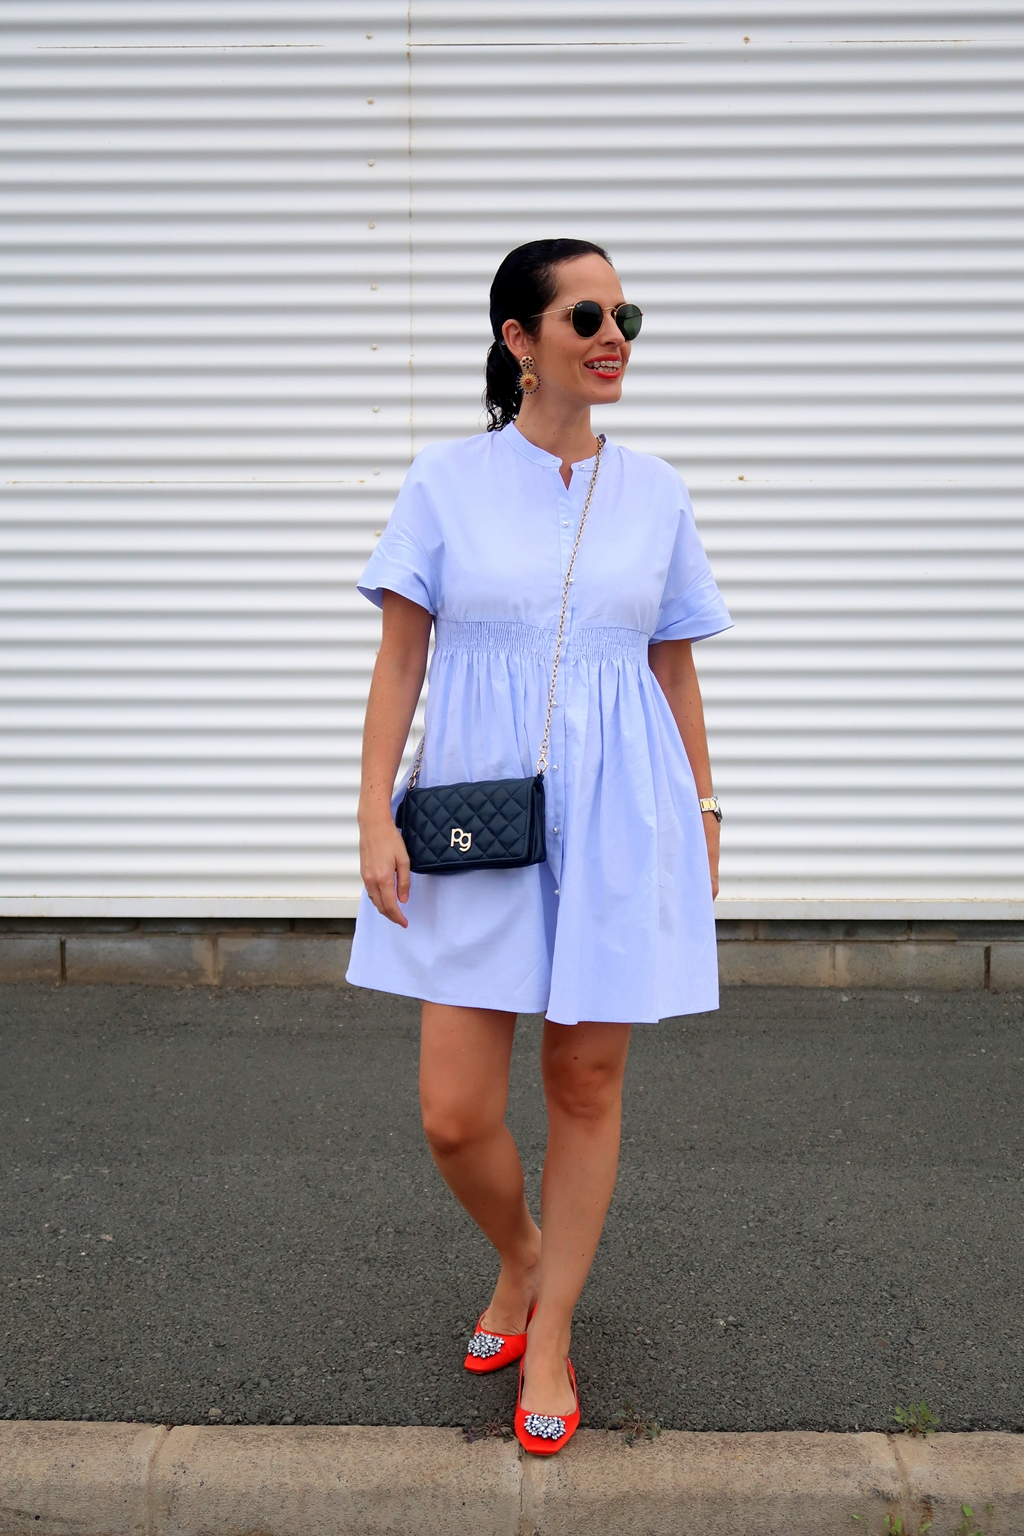 zara-blue-dress-outfit-streetstyle-daily-looks